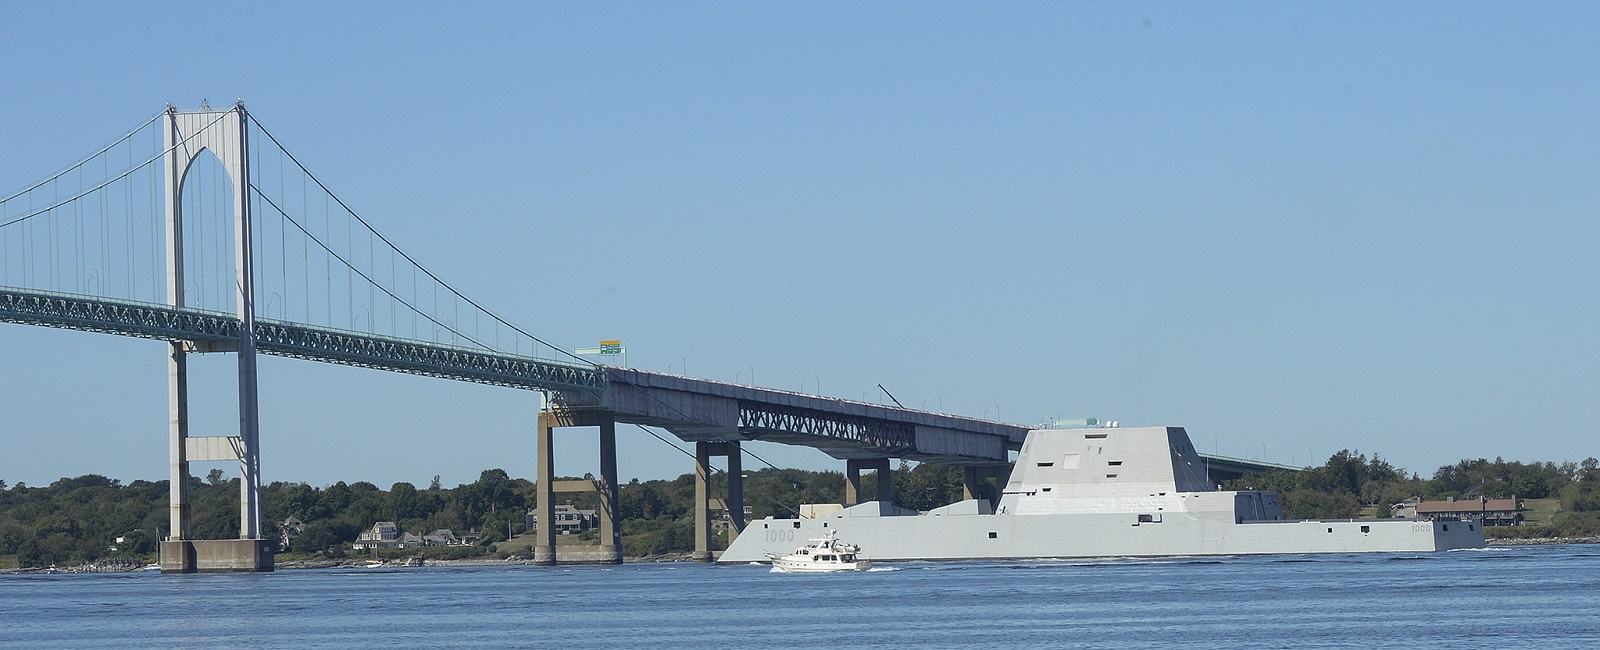 The guided-missile destroyer Pre-Commissioning Unit (PCU) Zumwalt (DDG 1000) departs from Naval Station Newport, Rhode Island following its maiden voyage from Bath Iron Works Shipyard in Bath, Maine.